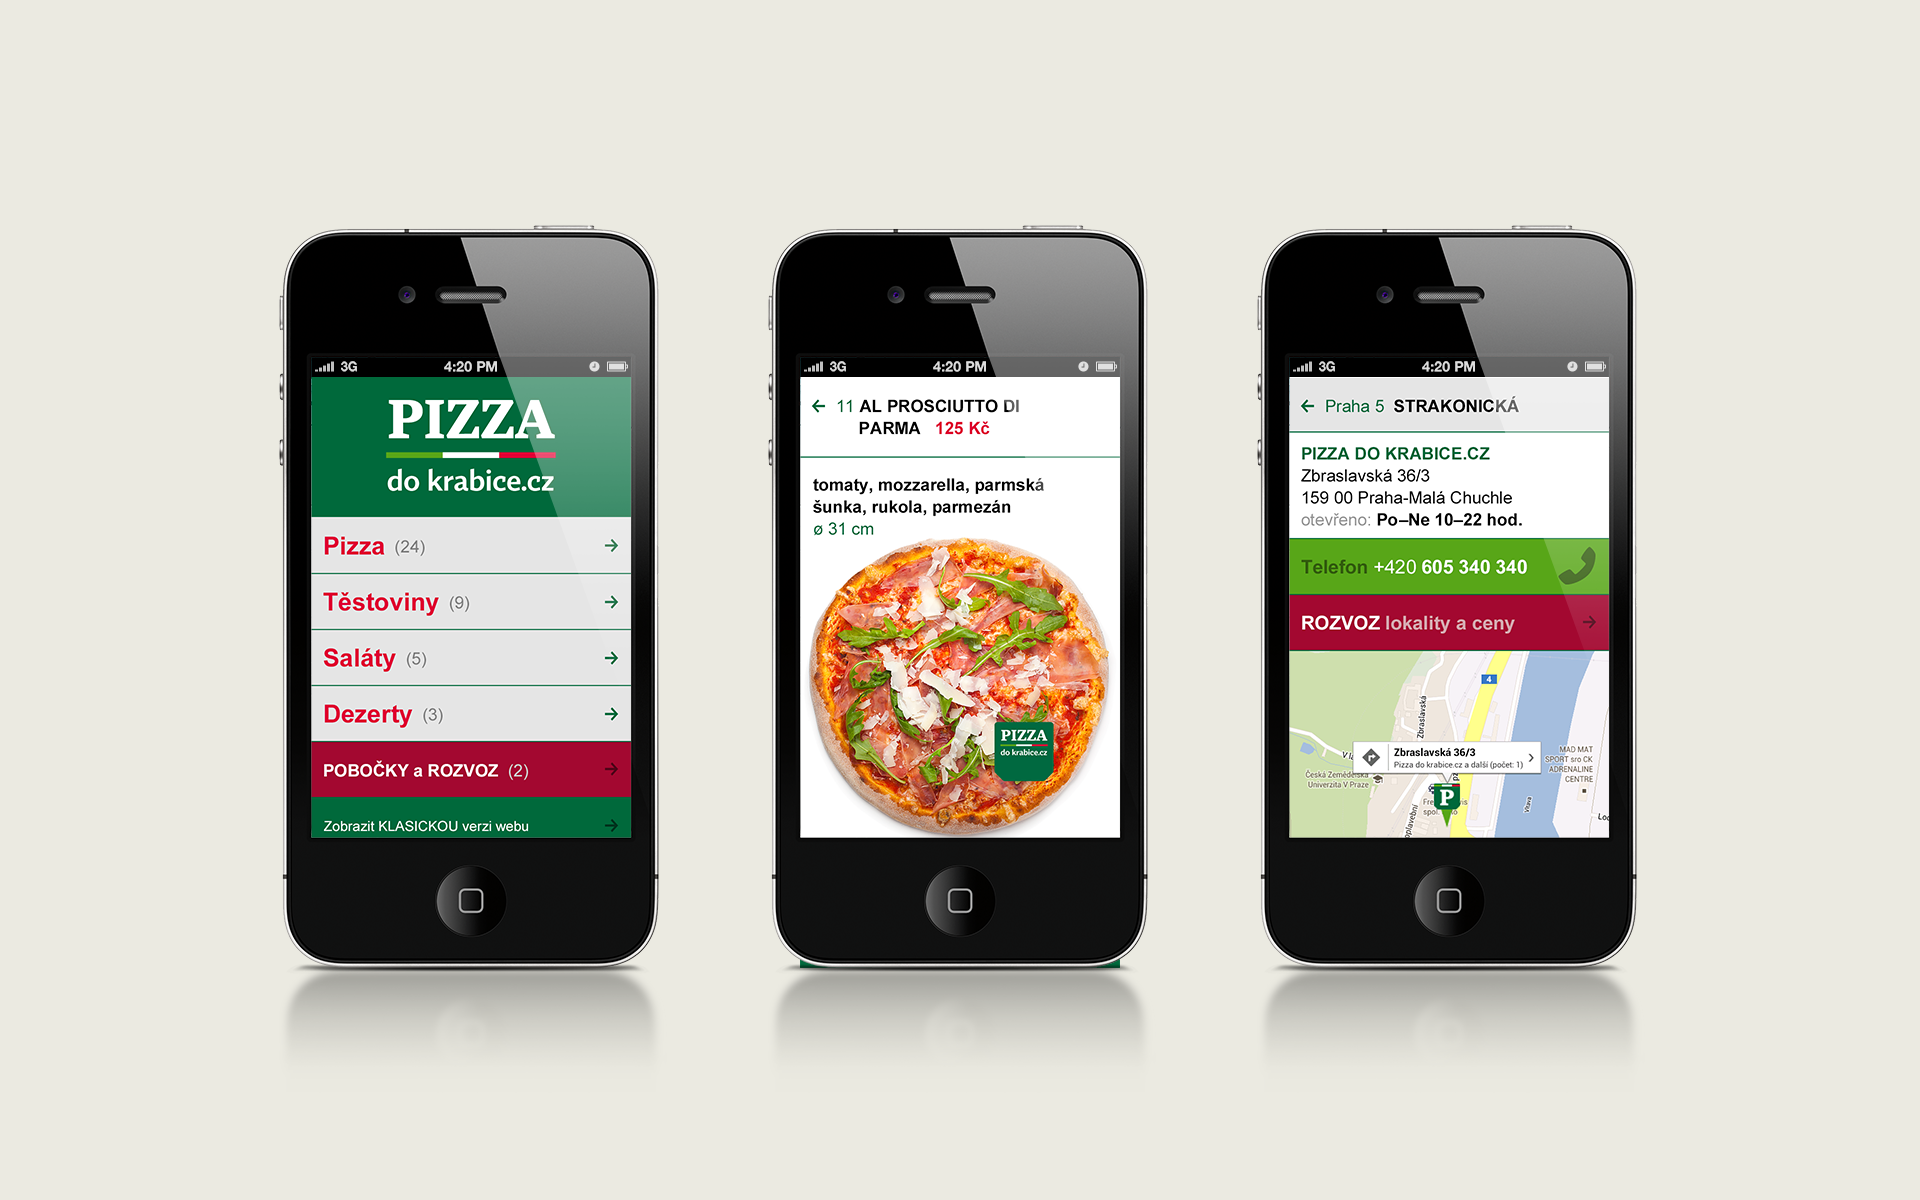 2012-Pizza-do-krabice-04-mobile-web